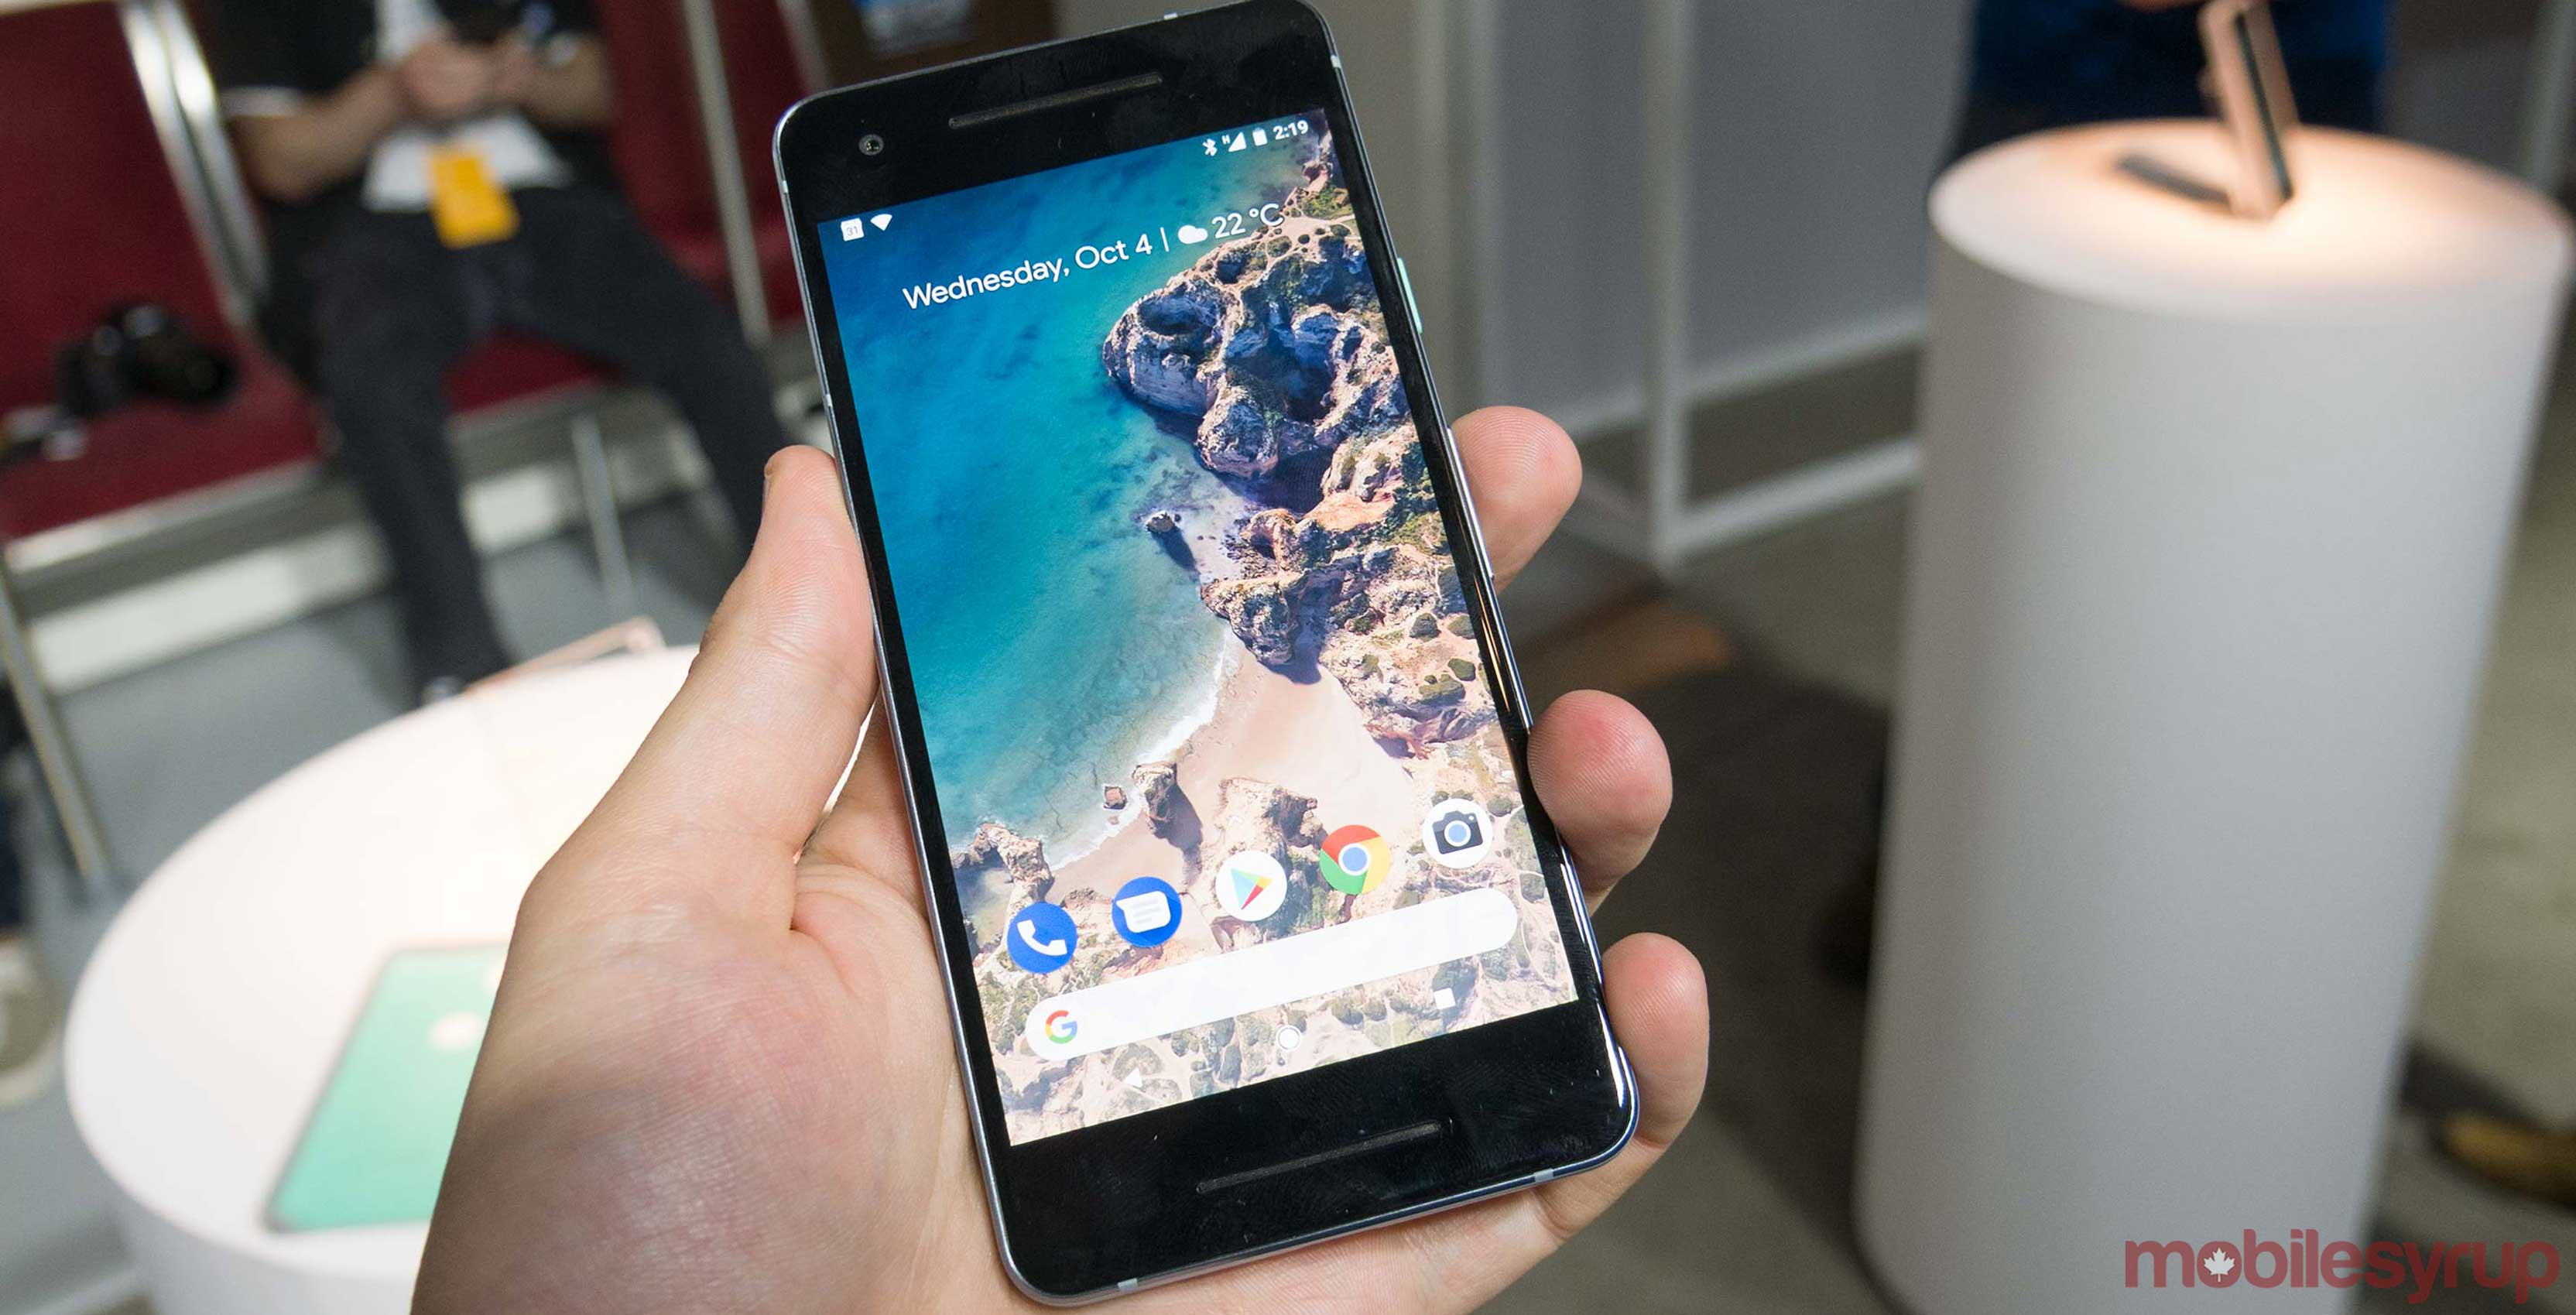 Pixel 2 Launcher APK allows almost any Android phone to add a bottom